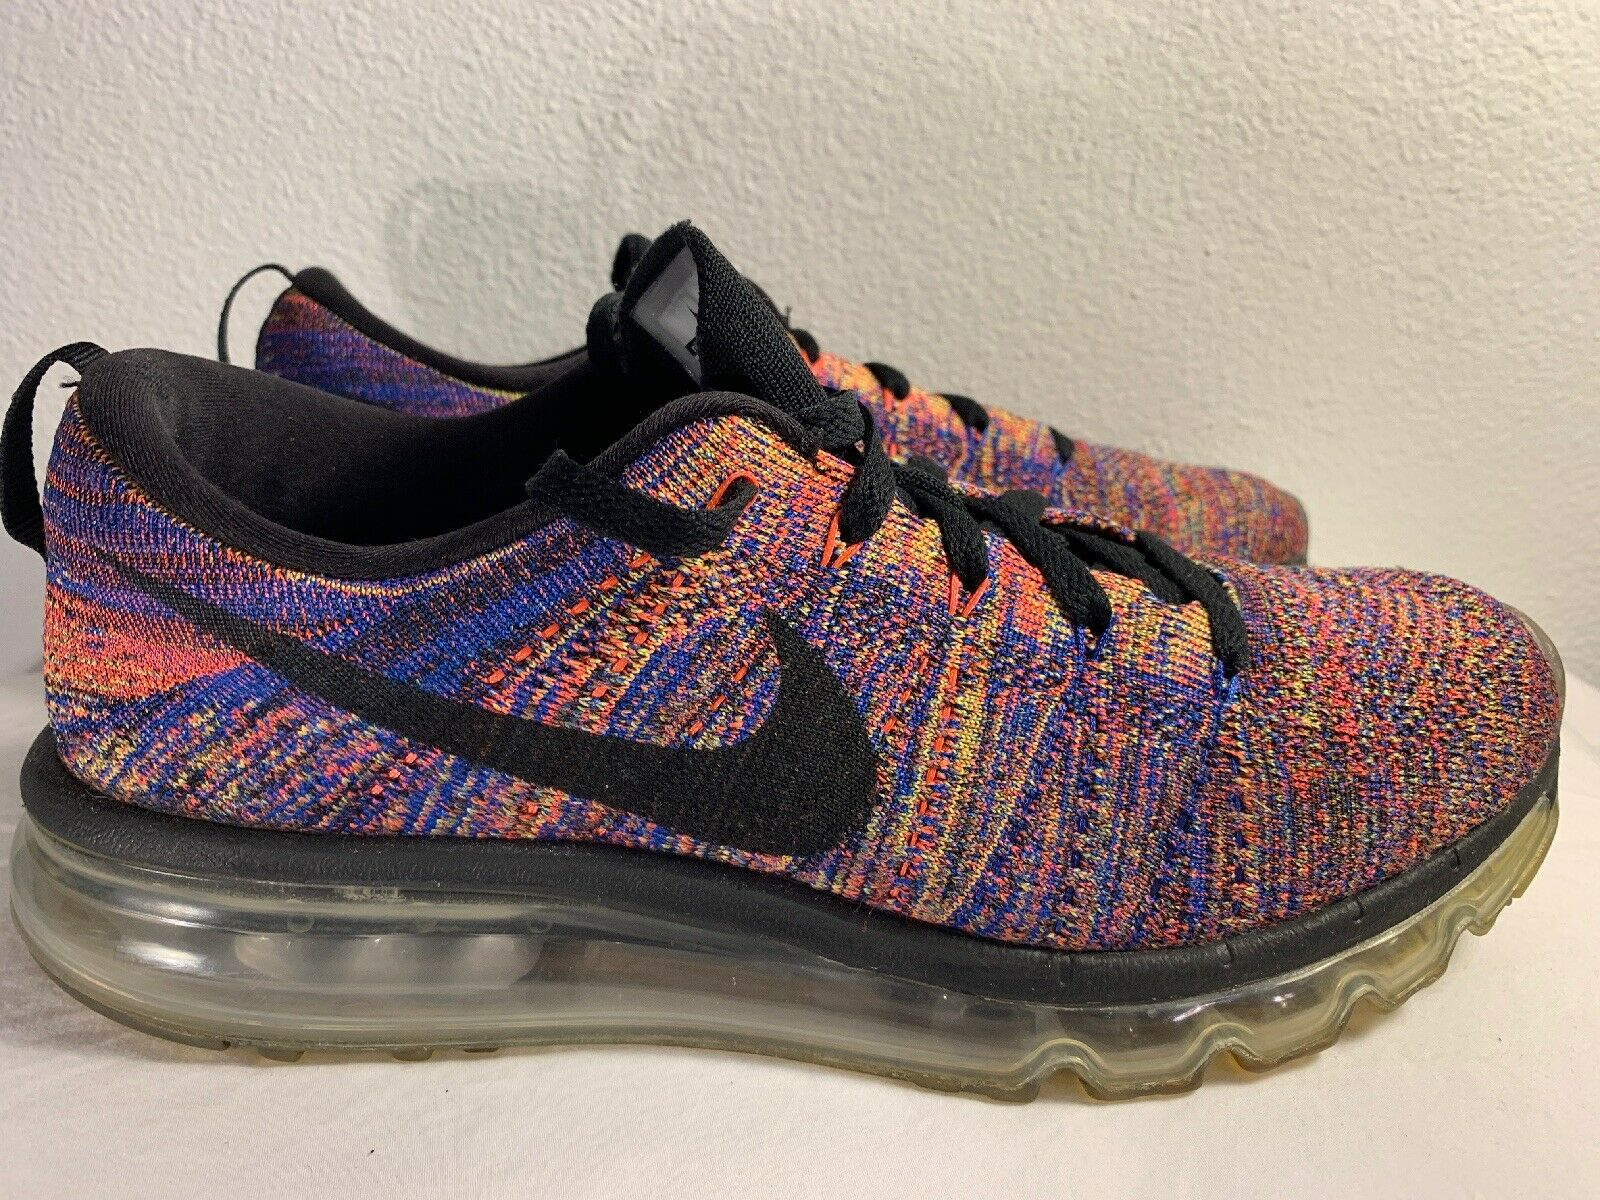 Nike Mens Flyknit Air Max Running shoes Multi color Sz 8.5 620469-012